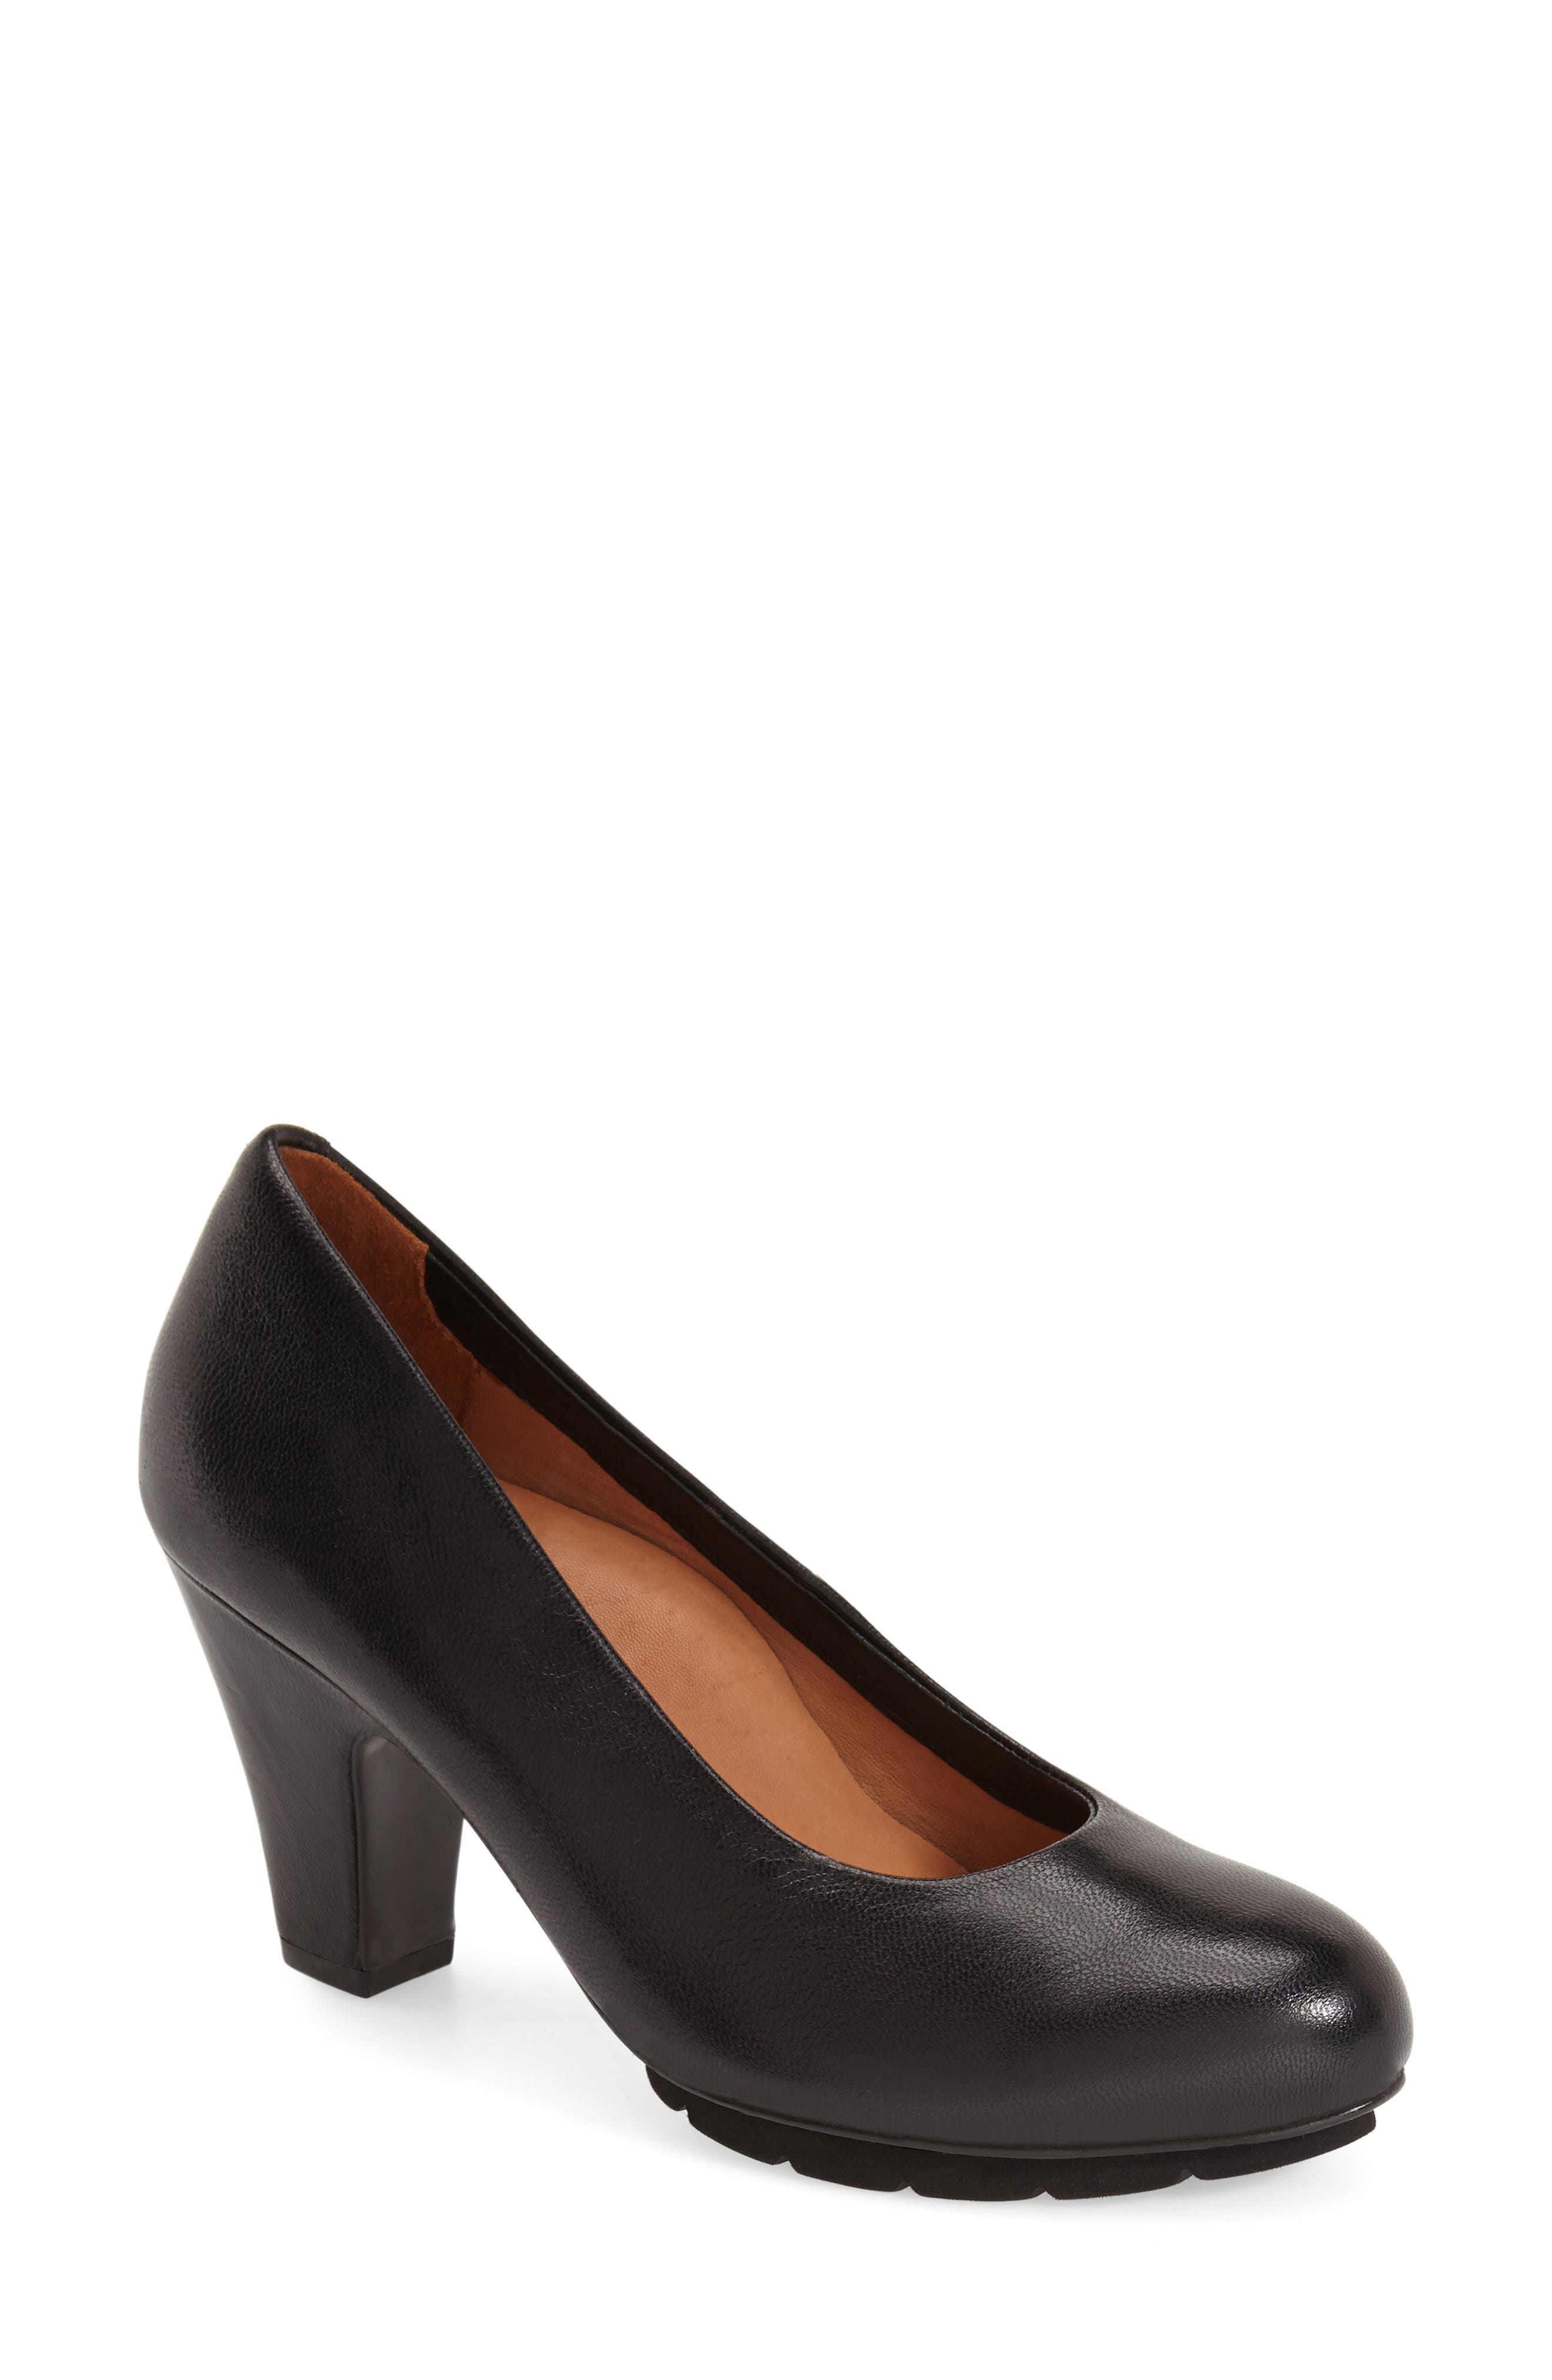 L'Amour des Pieds 'Fabienne' Round Toe Pump,                             Alternate thumbnail 3, color,                             001